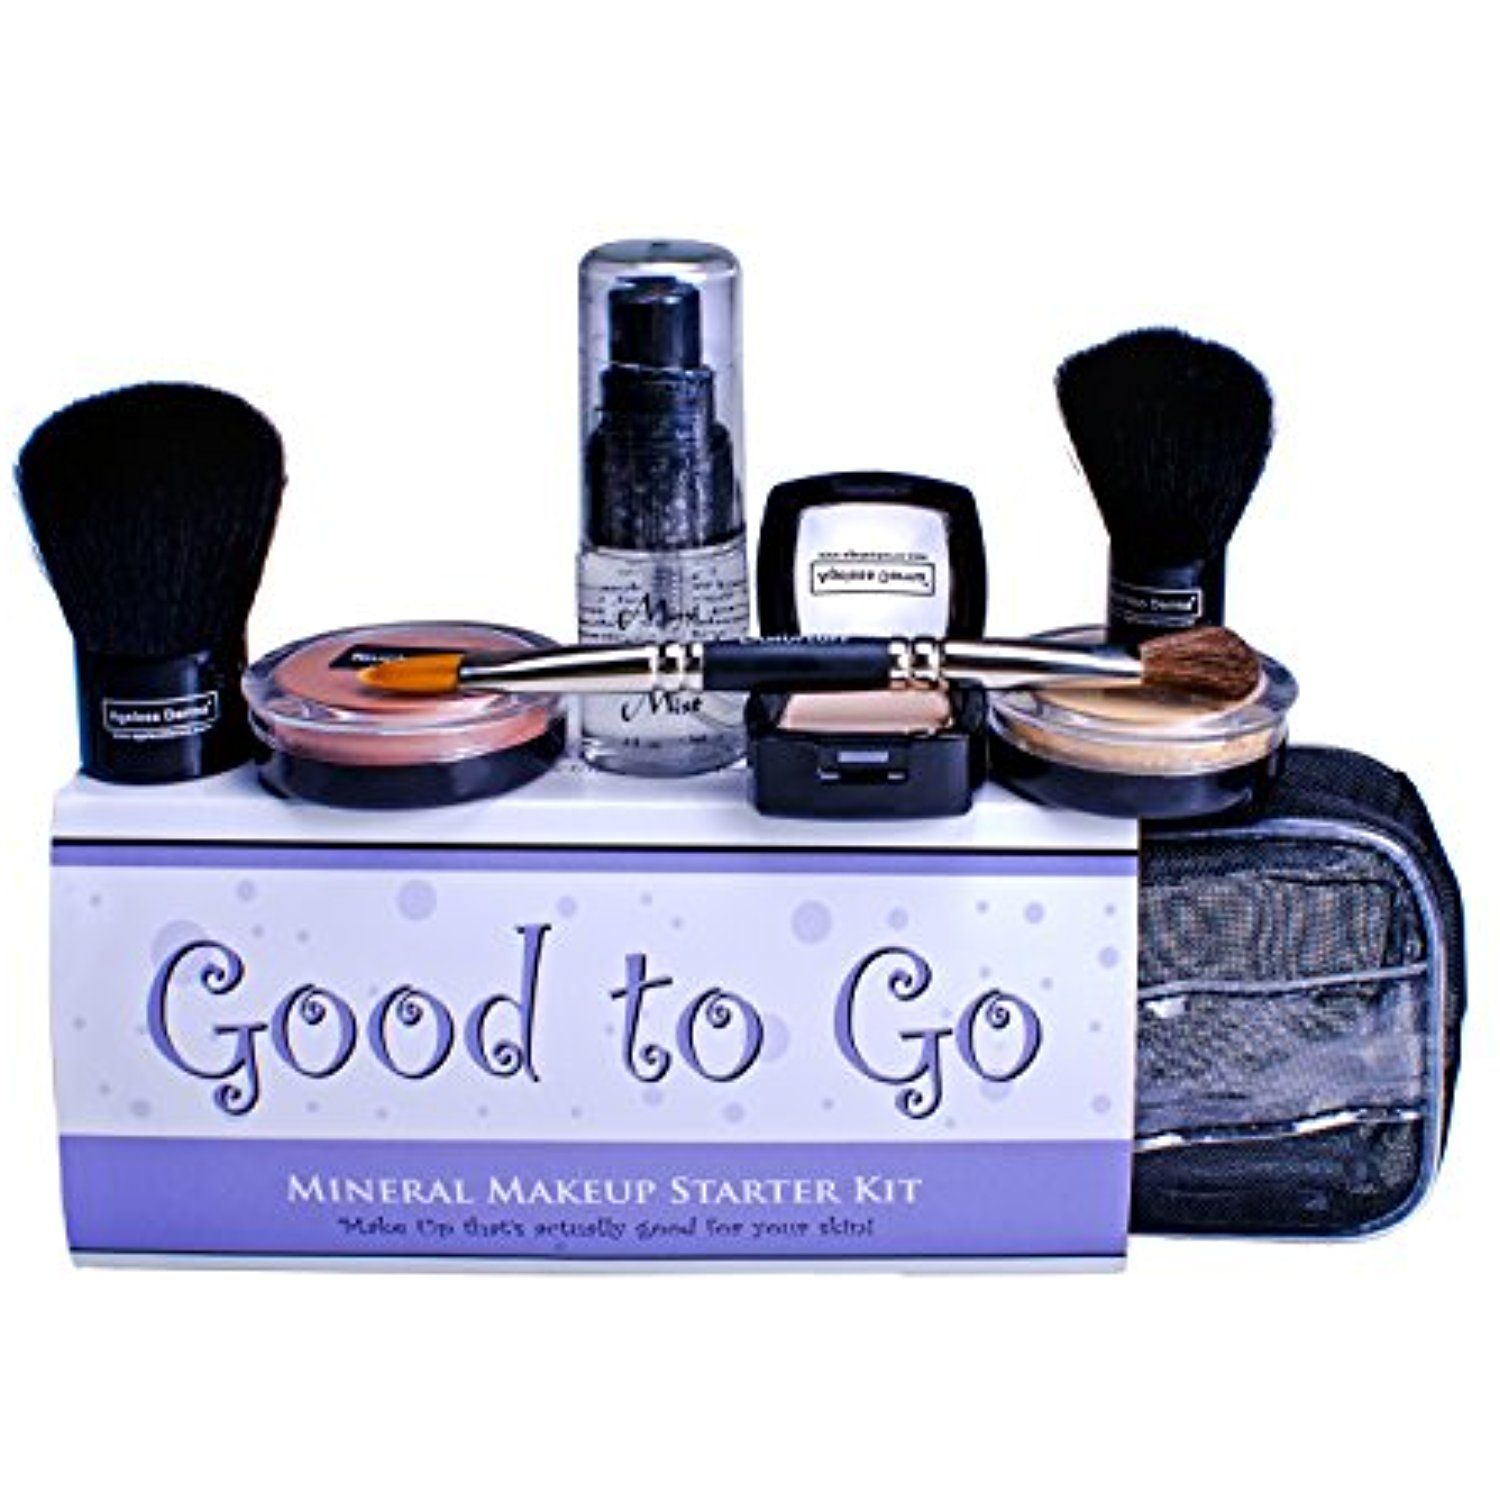 Ageless Derma Good to Go Mineral Makeup Kit with Vitamins